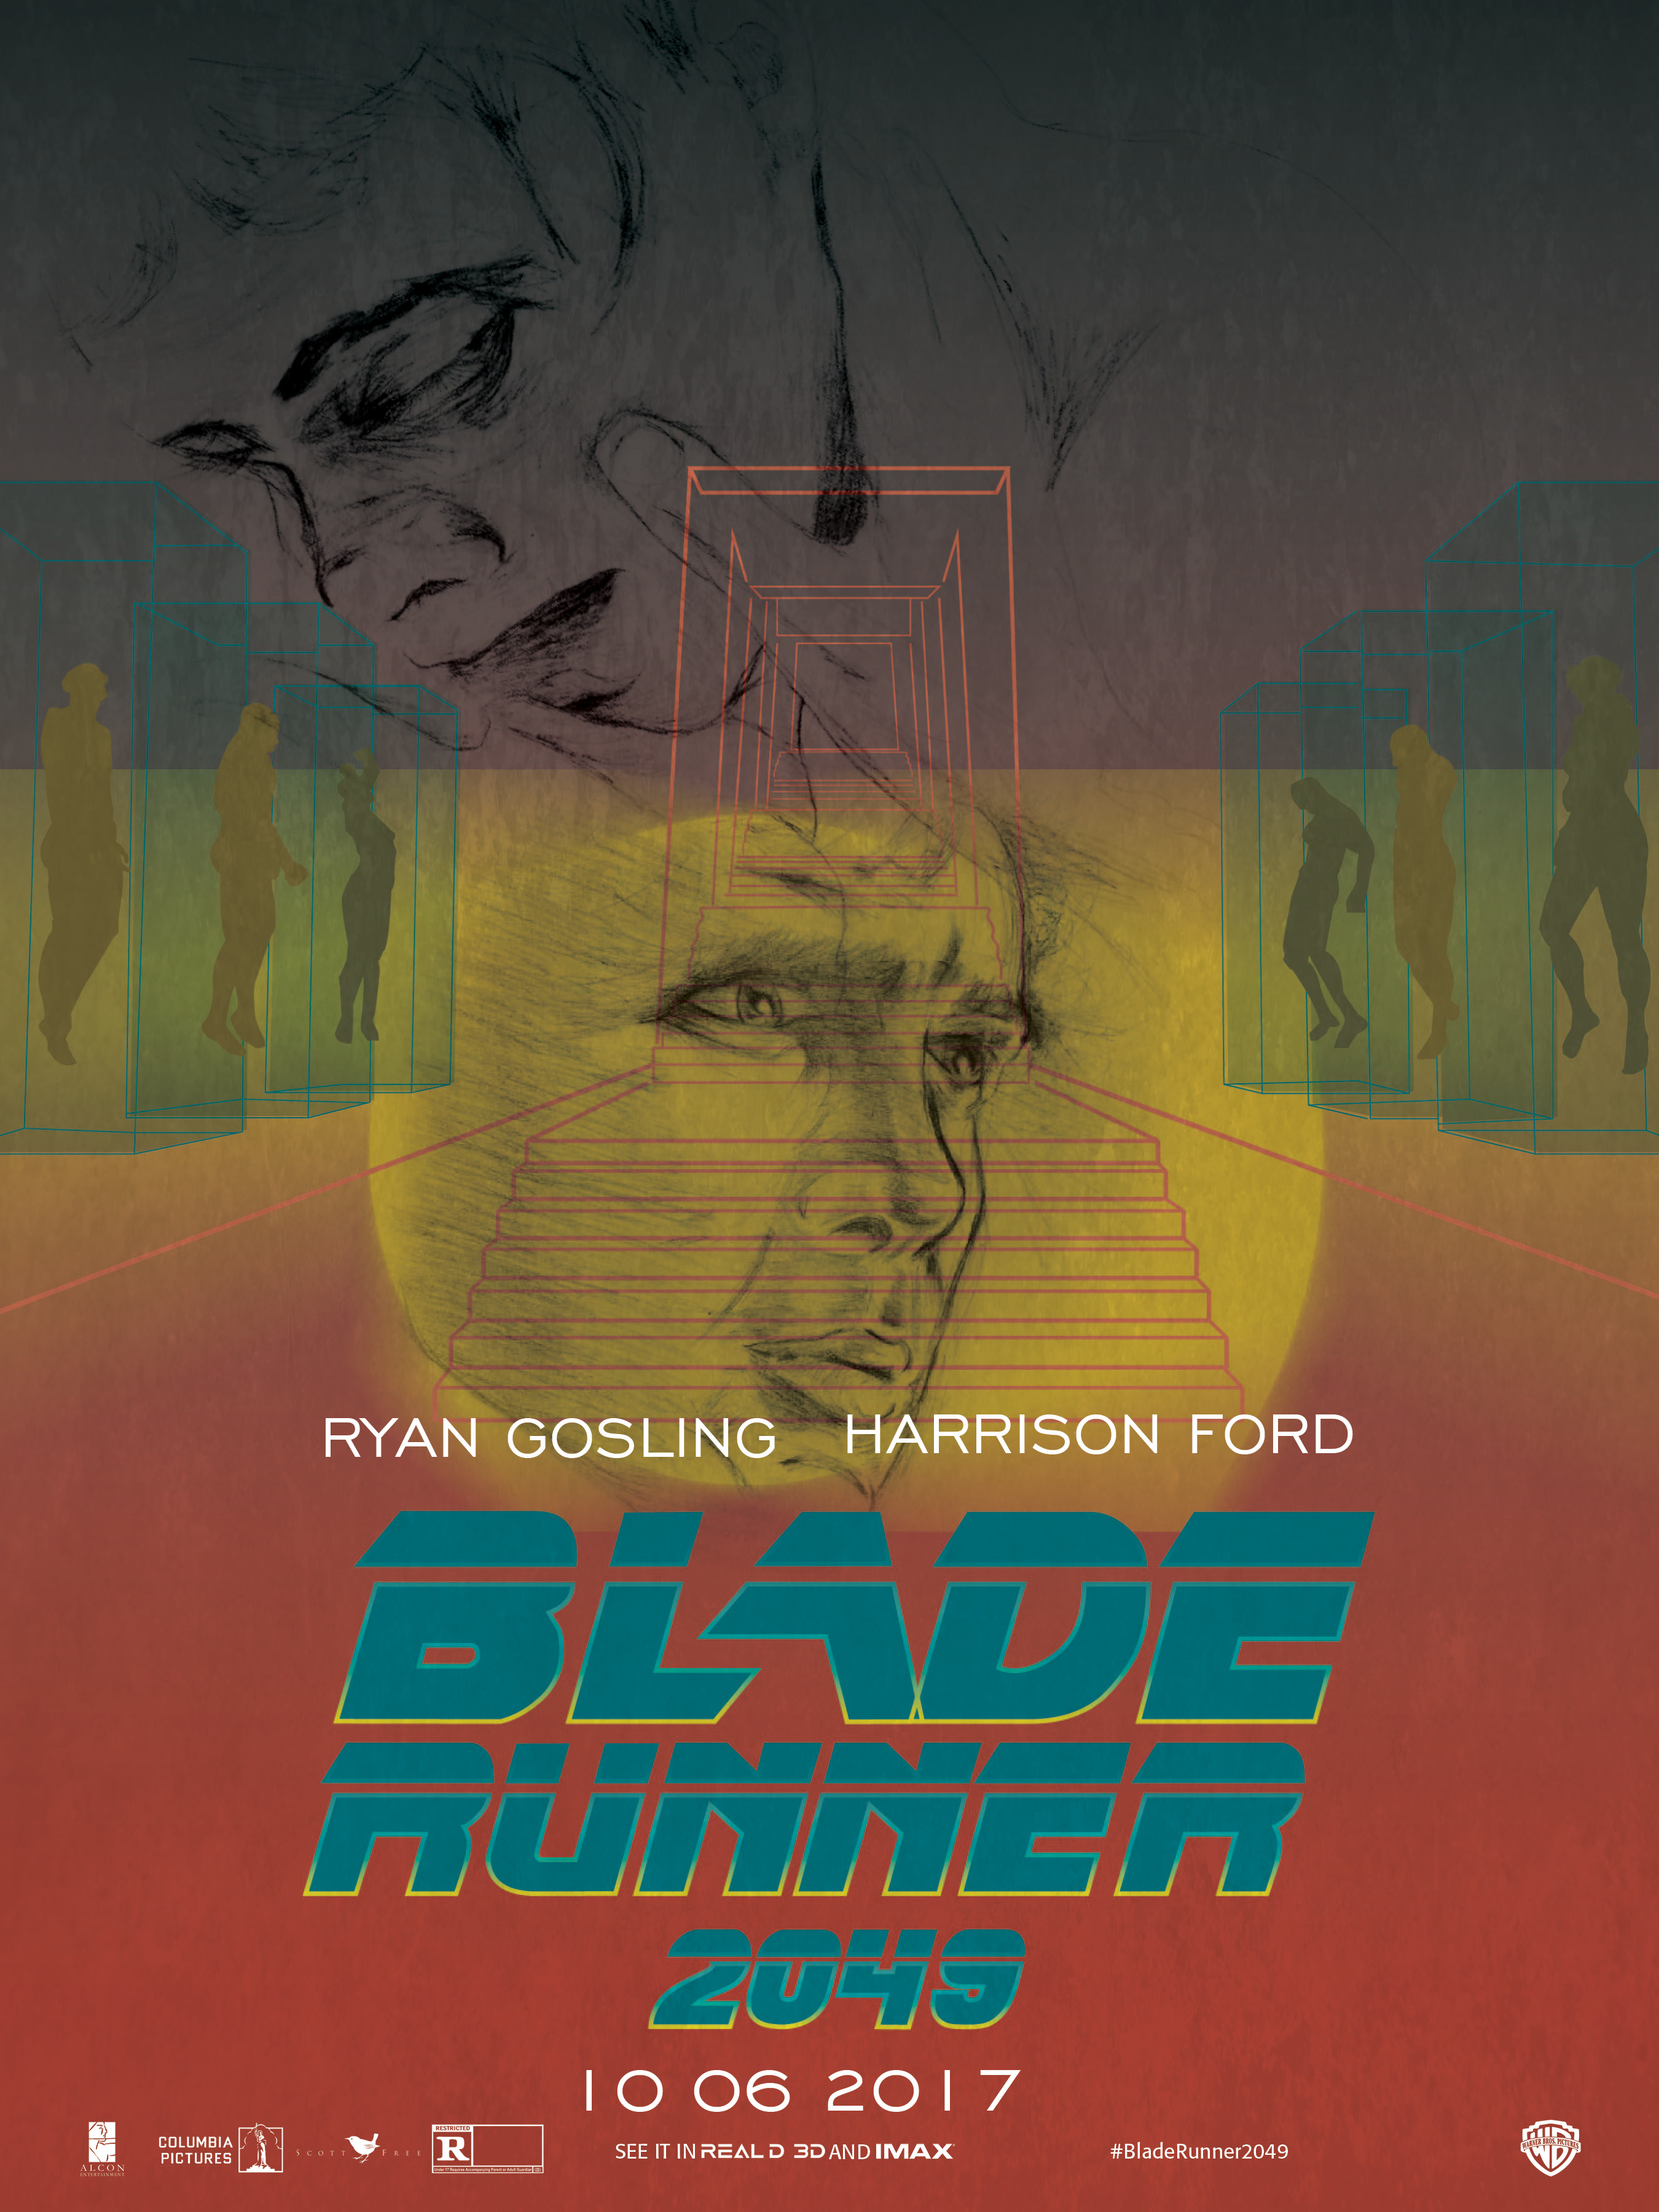 a description of blade runner Despite rave reviews, blade runner 2049 is struggling in its opening weekend at  the us box office after opening at over 4000 sites.